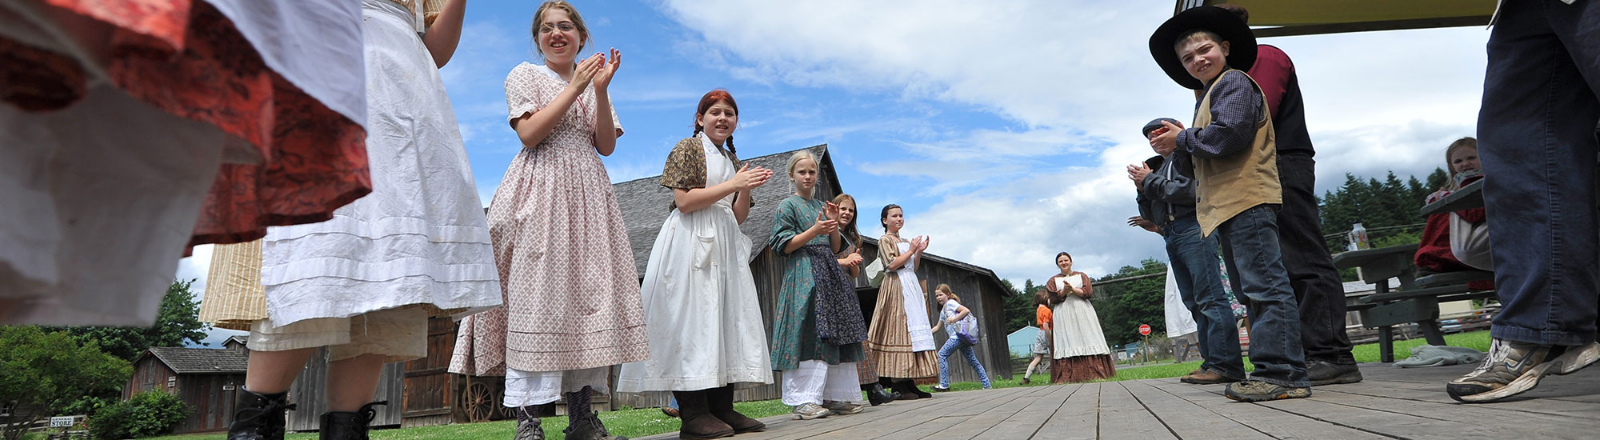 In long dresses and aprons or vests and jeans pioneer chldren reenactors line up for a reel dance at Philip Foster Farm.